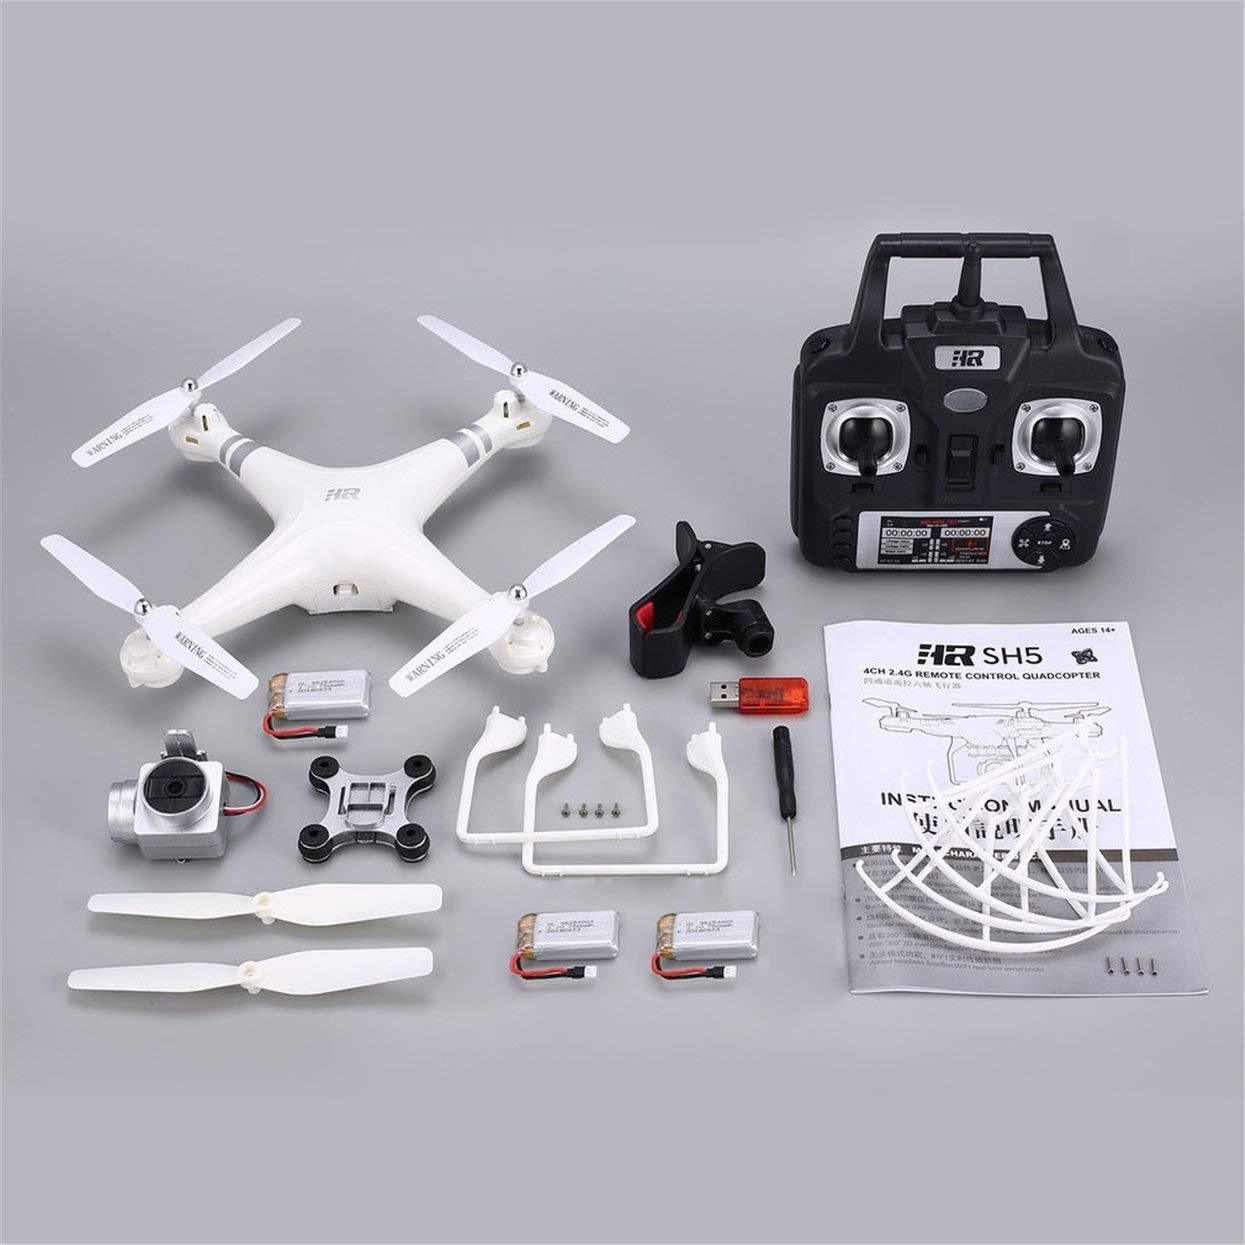 Tellaboull for 2,4 G FPV Drohne RC Quadcopter mit 3 Batterien 1080P Weitwinkel-WiFi HD-Kamera Live-Videohöhenposition Headless-Modus